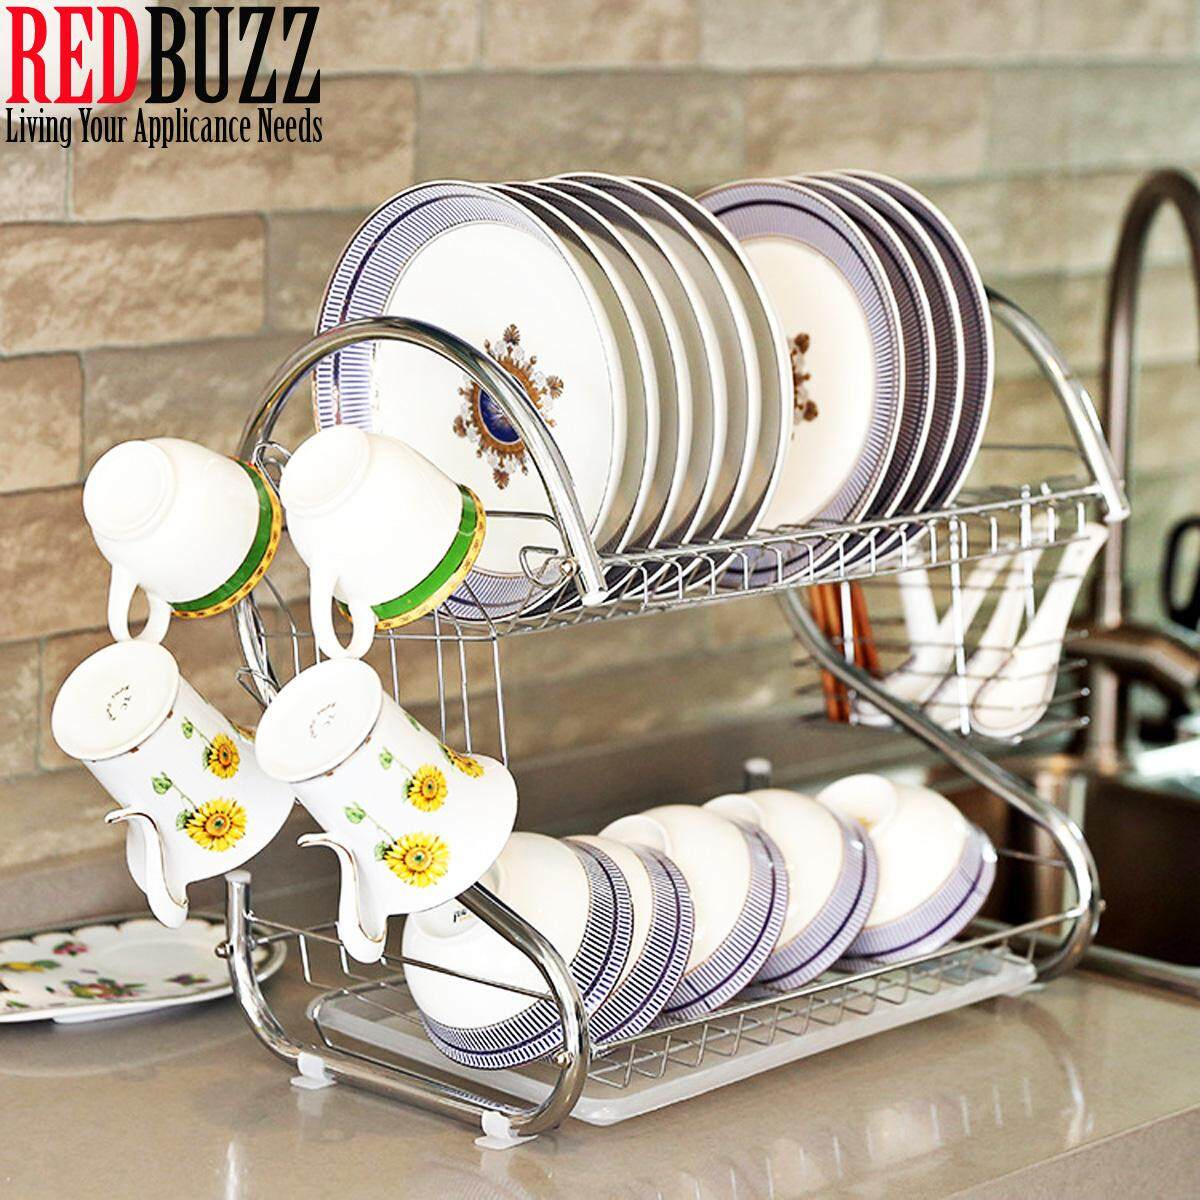 Rak Pinggan Stainless Steel 2 Layer S Shape Dish Rack Set with Tray